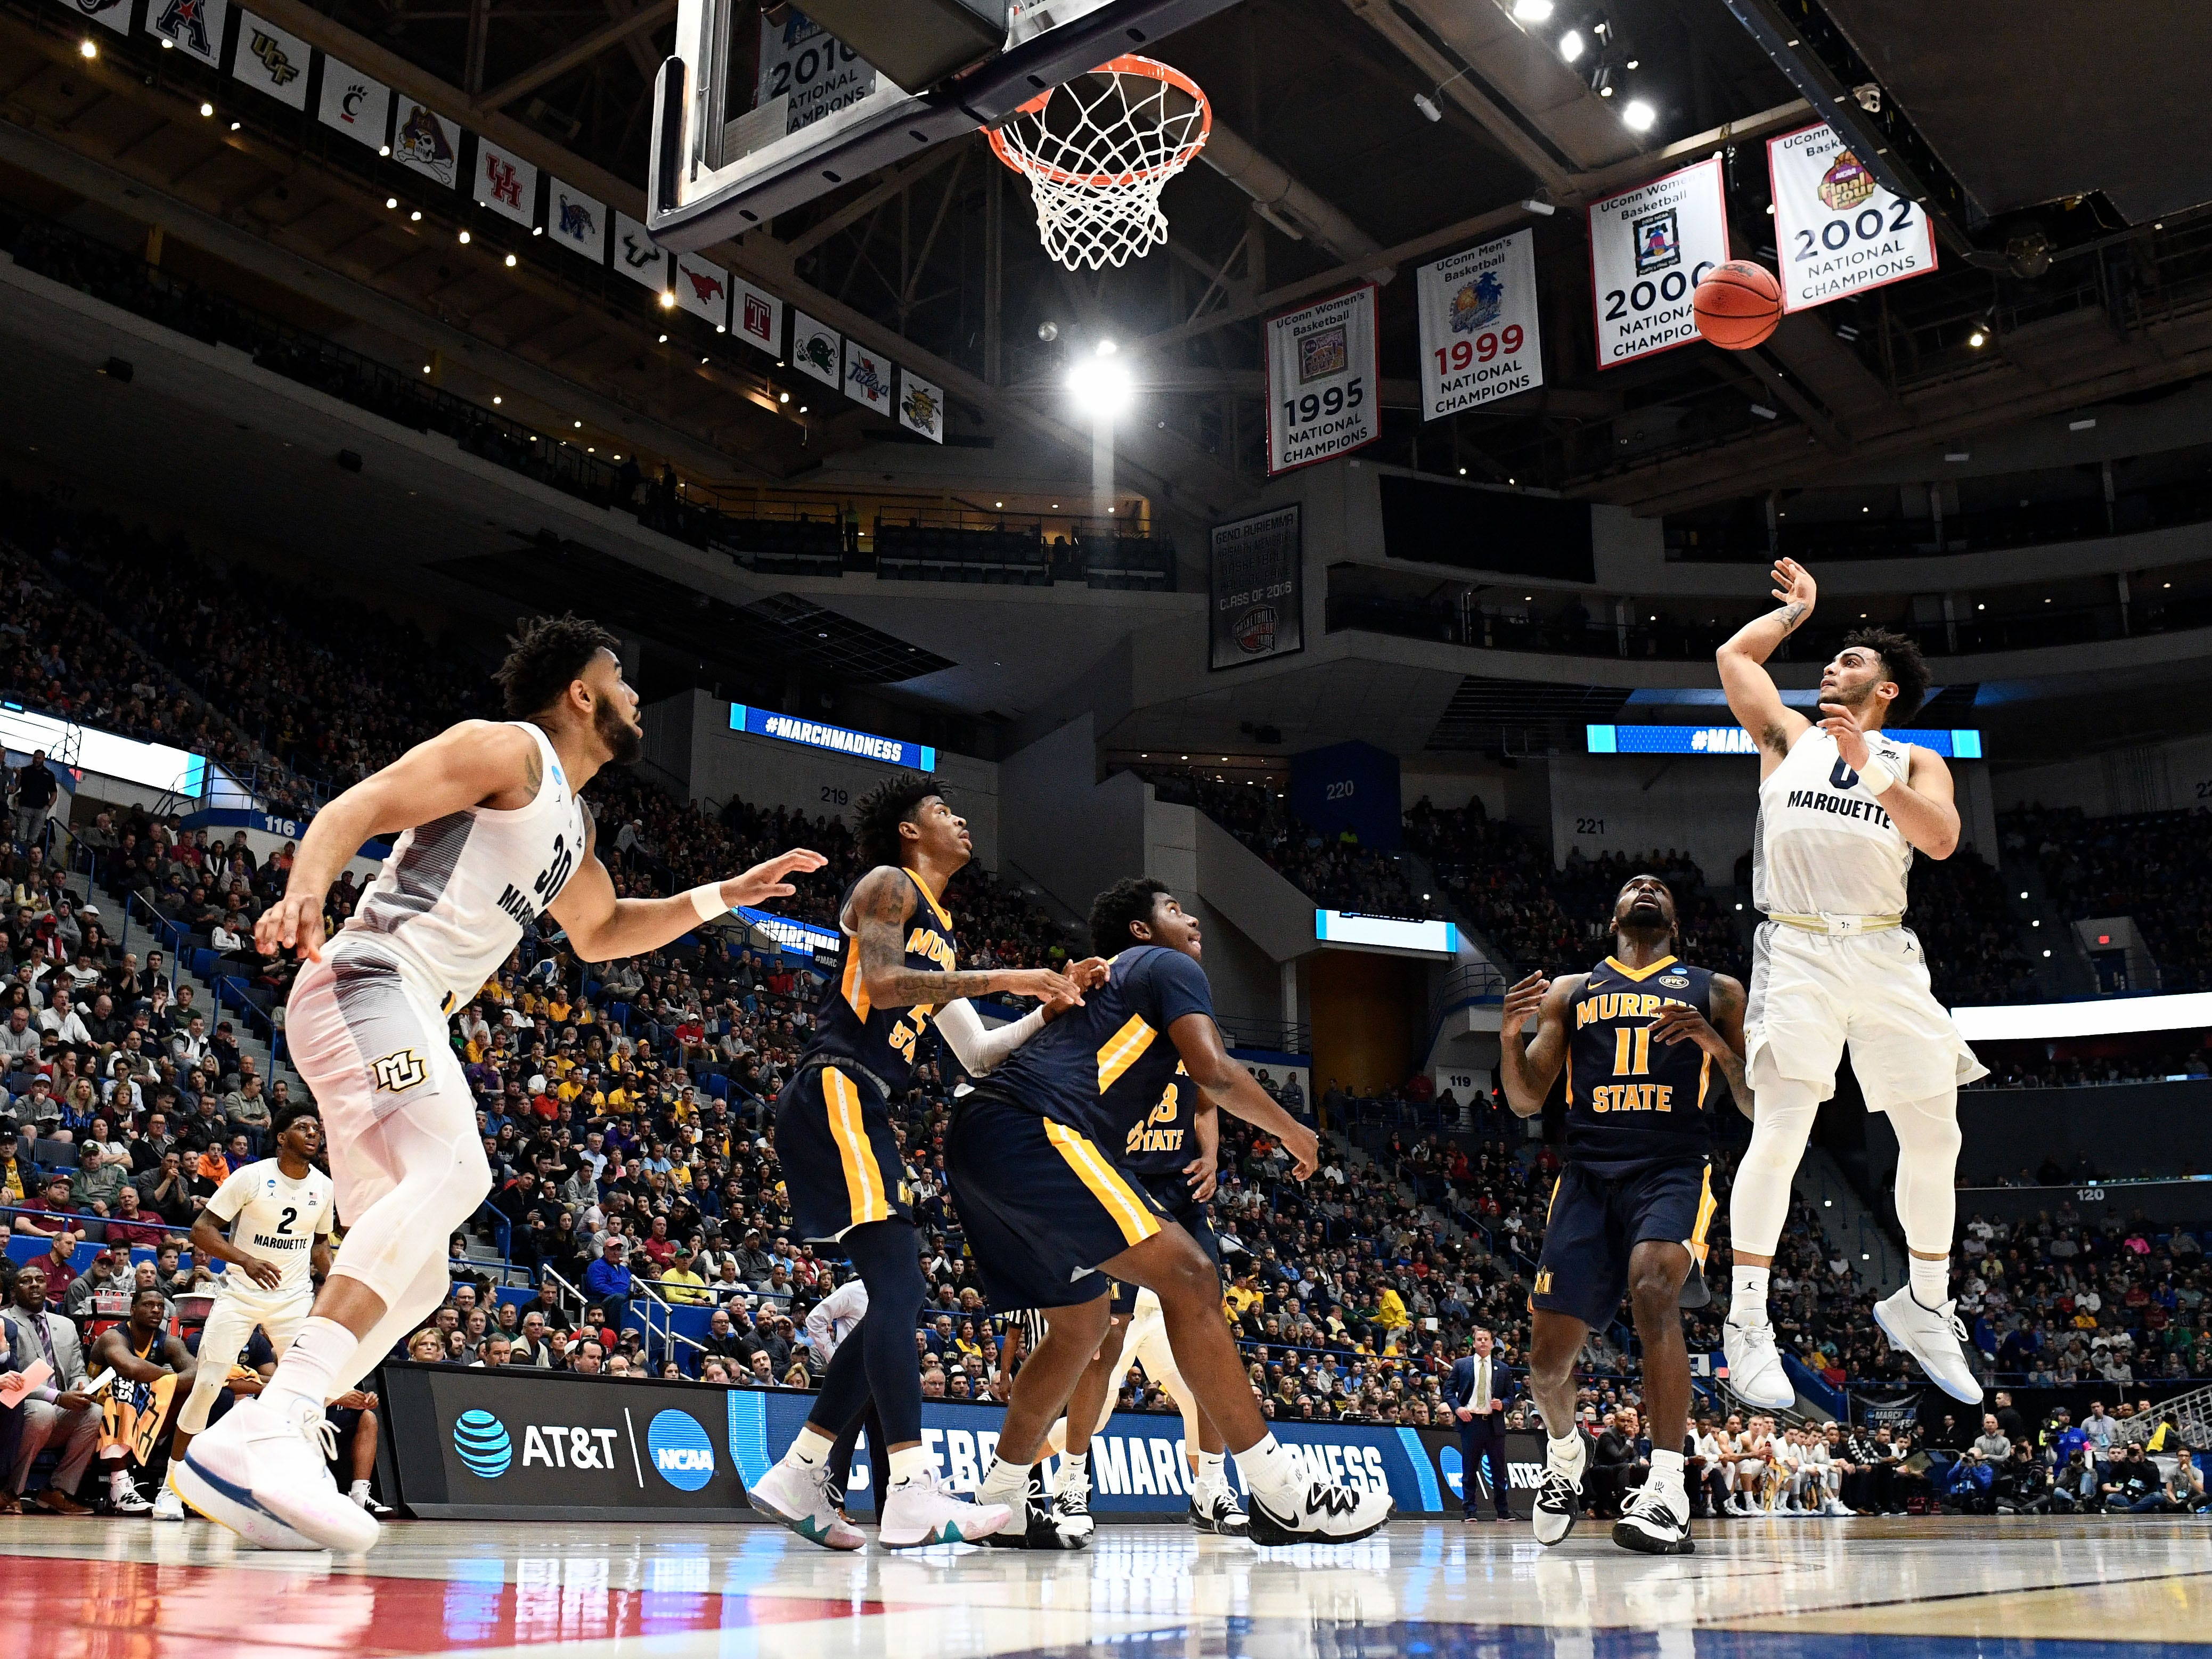 Marquette guard Markus Howard puts up a floater against Murray State during the first half.